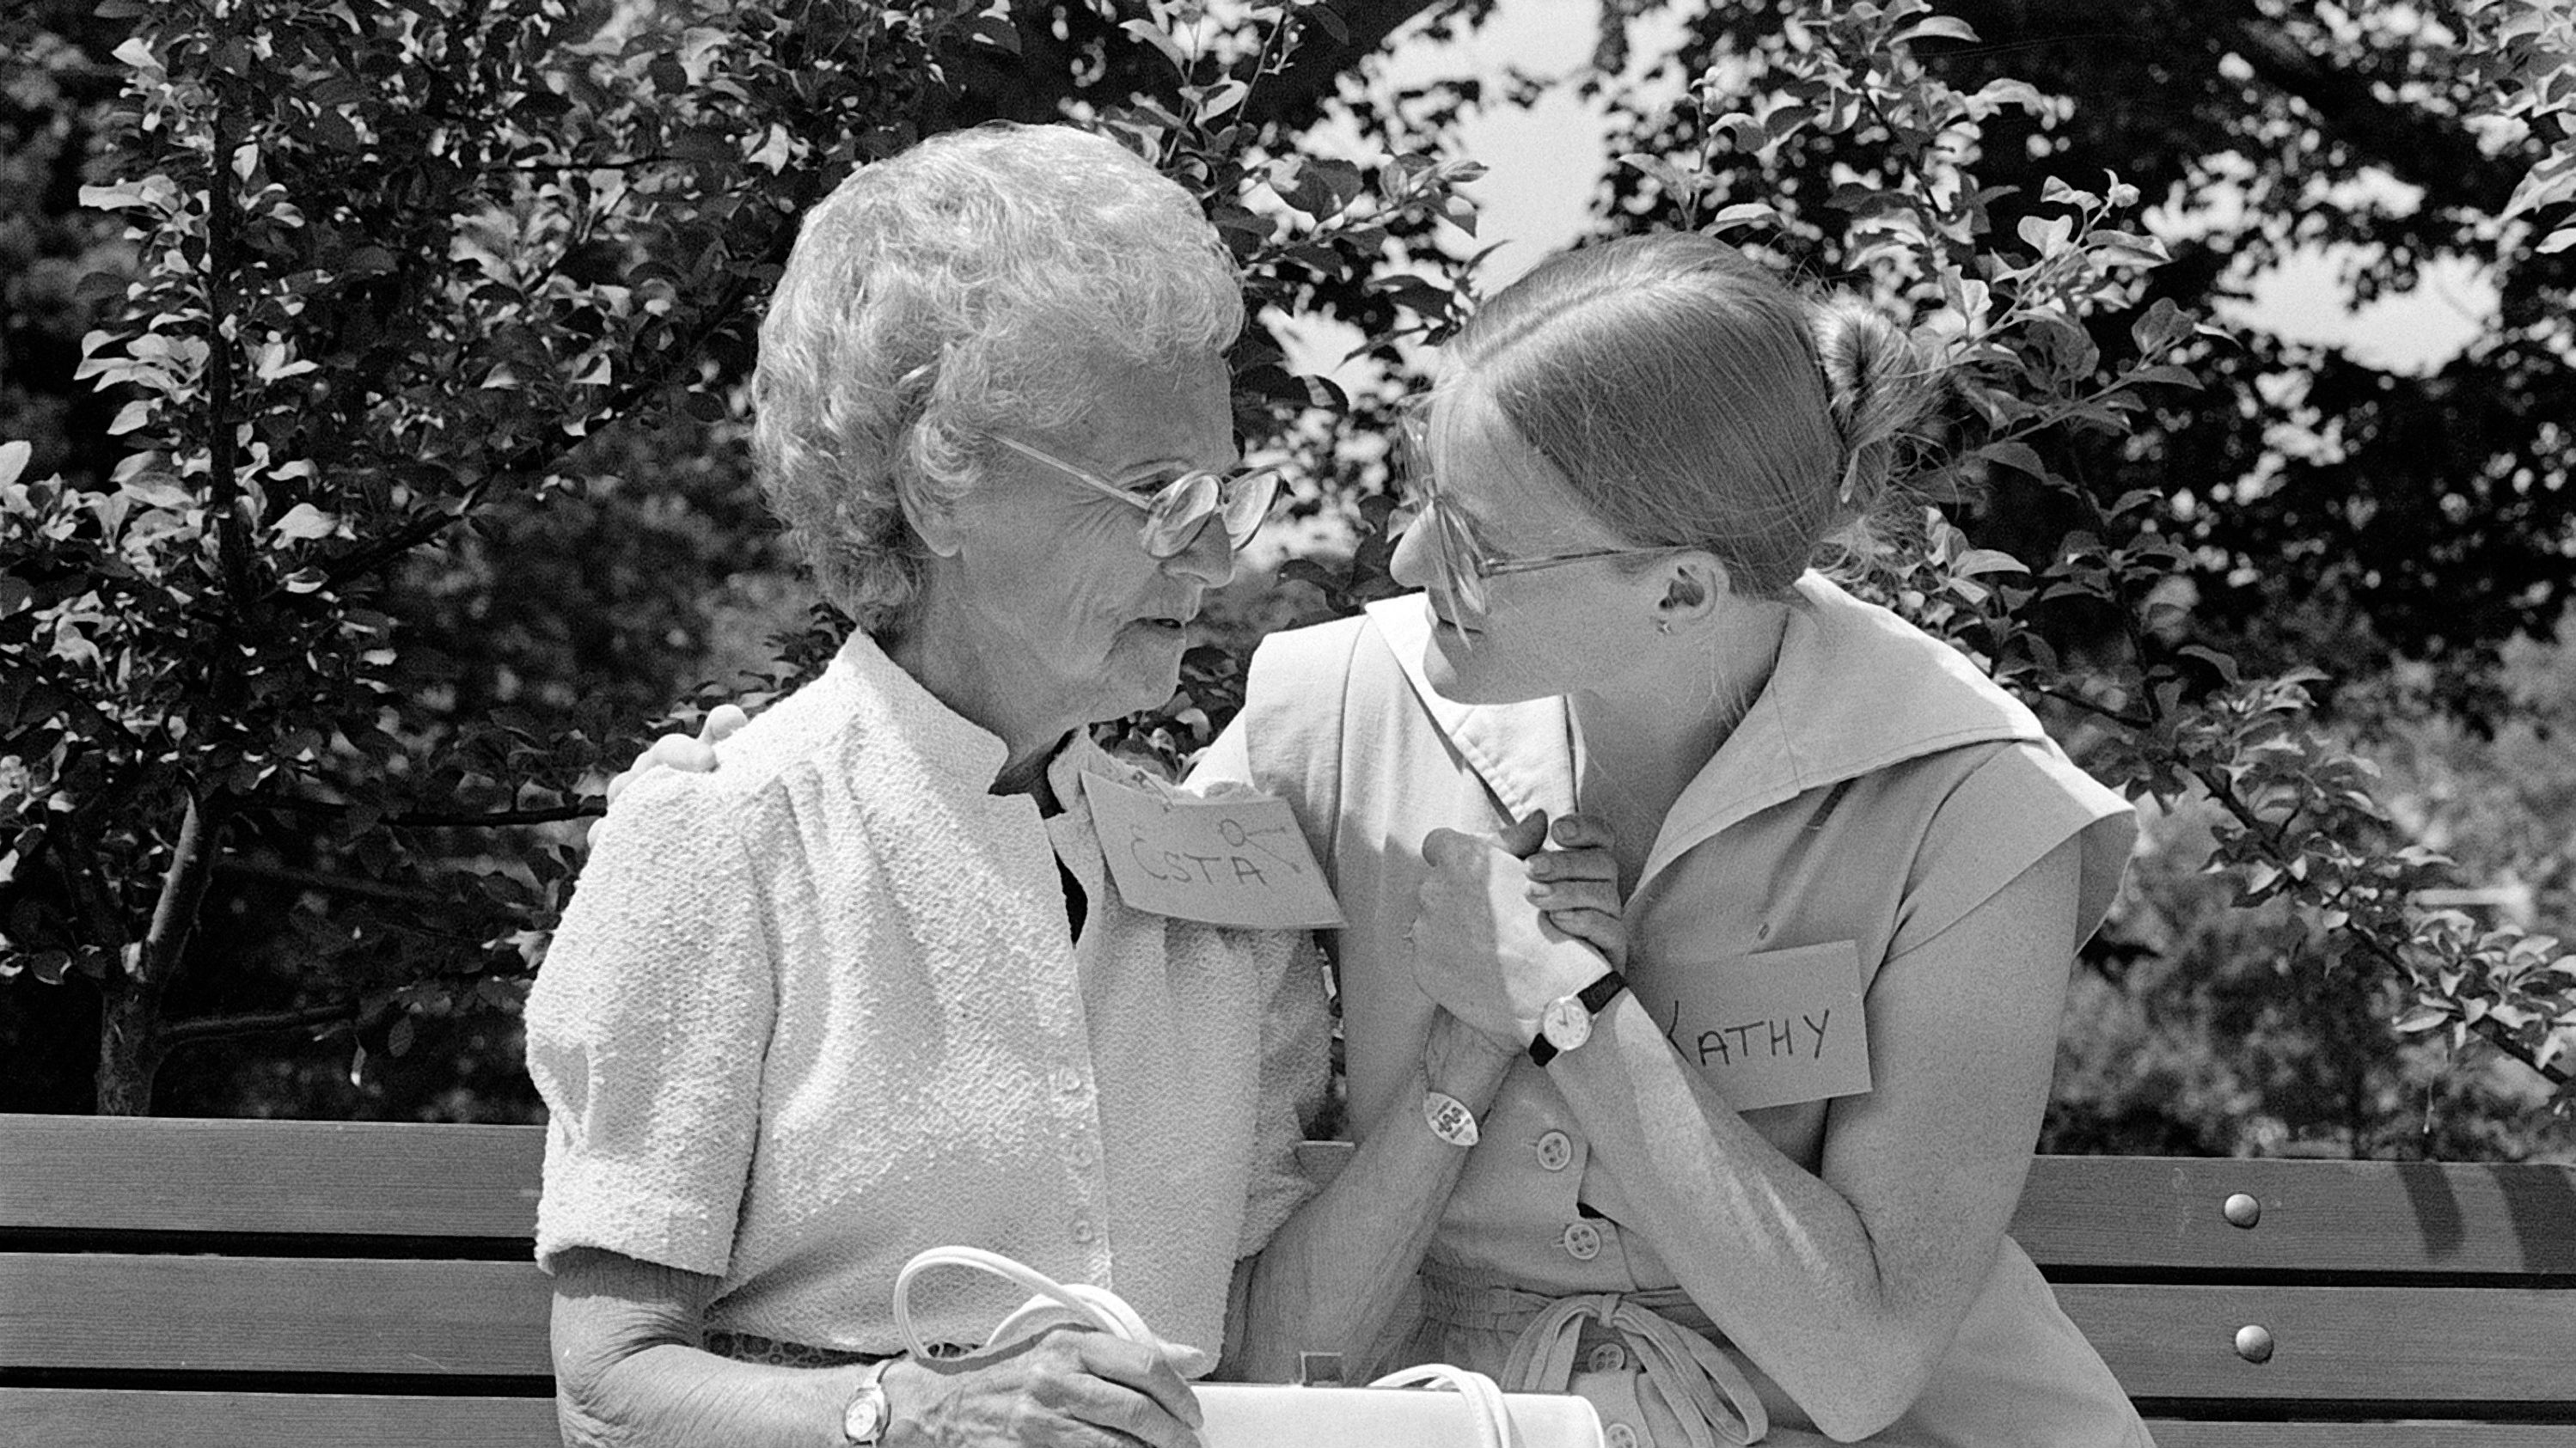 Kathy Thoen, right, a social worker at the Community Family Adult Day Health Center in Medford, Mass., holds hands with a woman identified as Esta, left, who has Alzheimer's disease, at the opening of the center's Alzheimer's program, June 19, 1984.